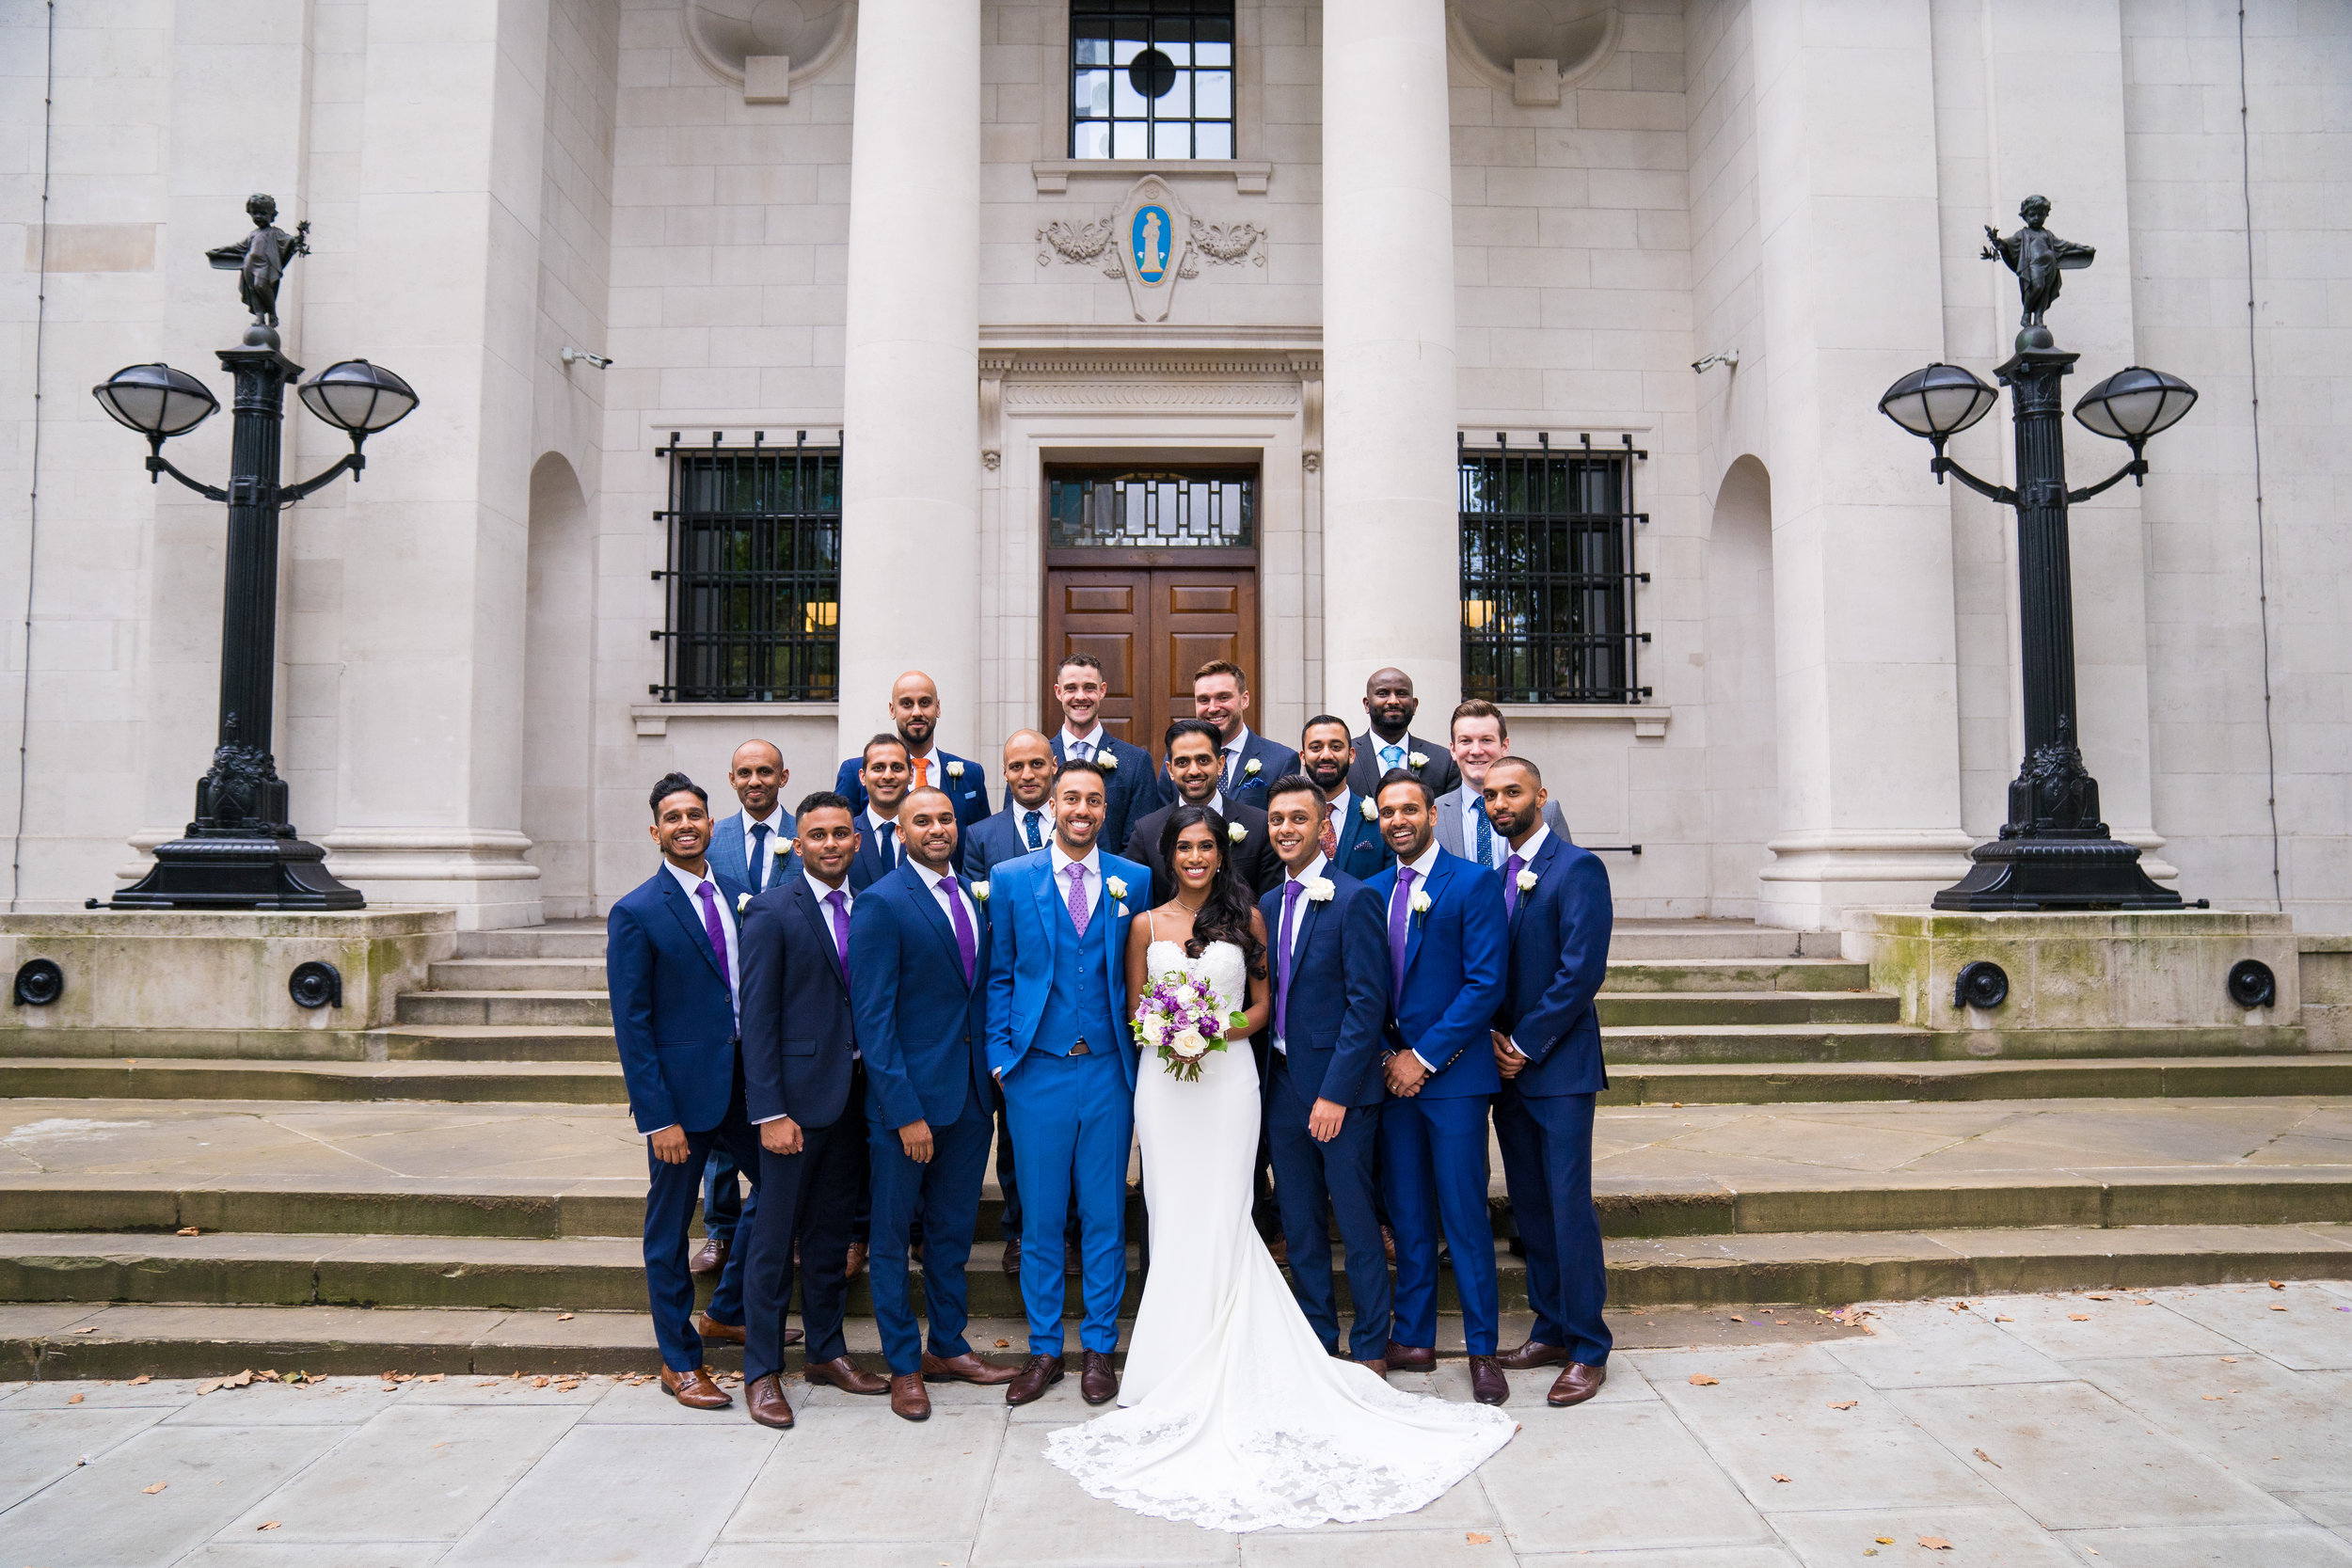 anglo-asian-hindu-civil-wedding-photography-videography-london-portrait-marylebone-old-town-hall-44